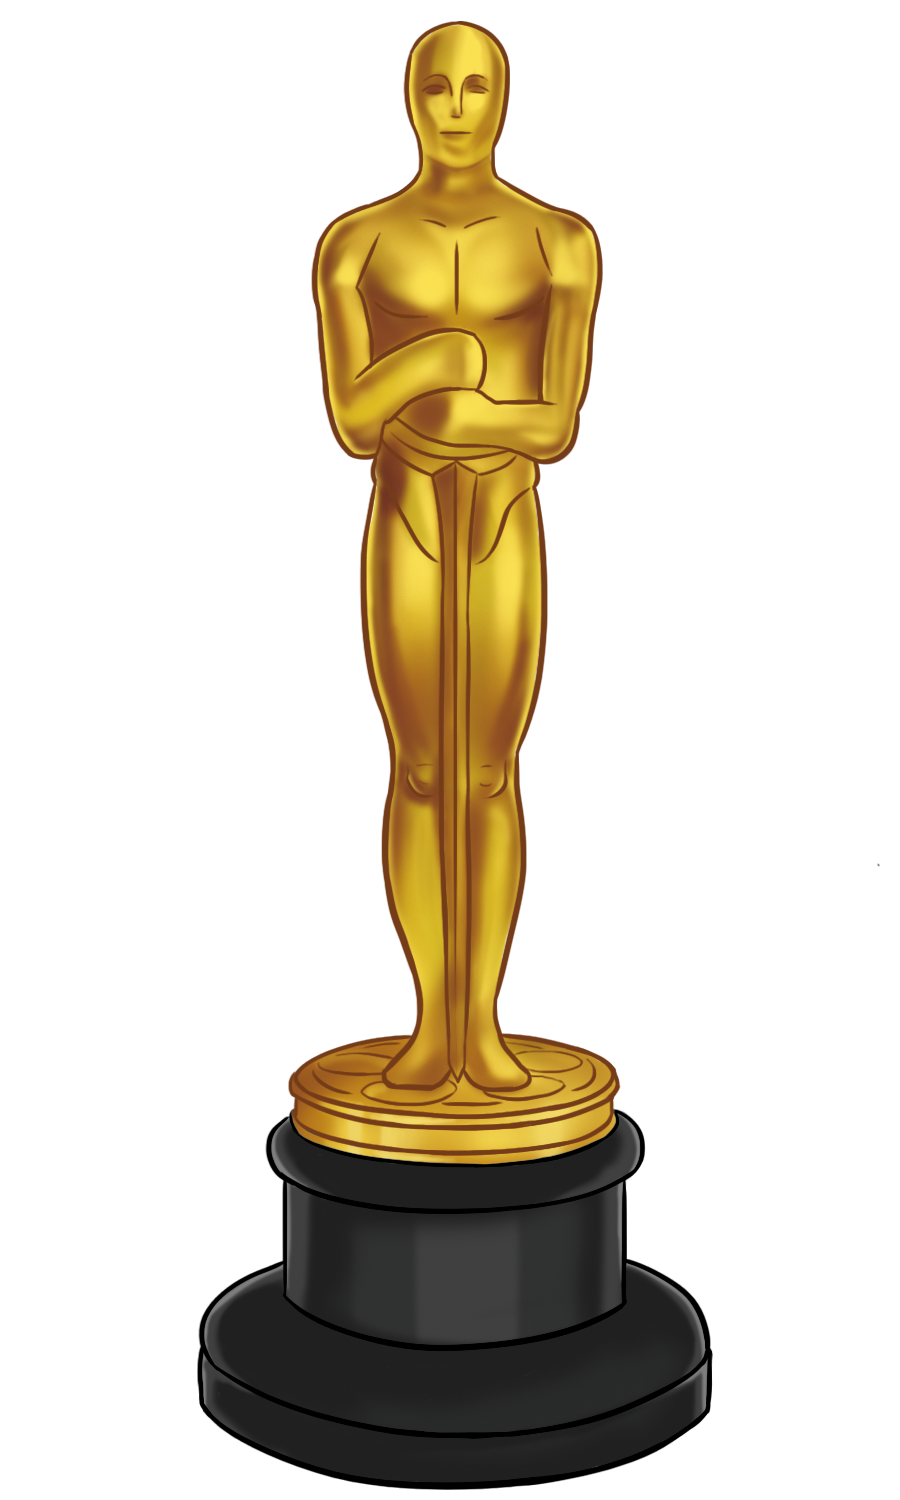 oscar man awards golden png #38930